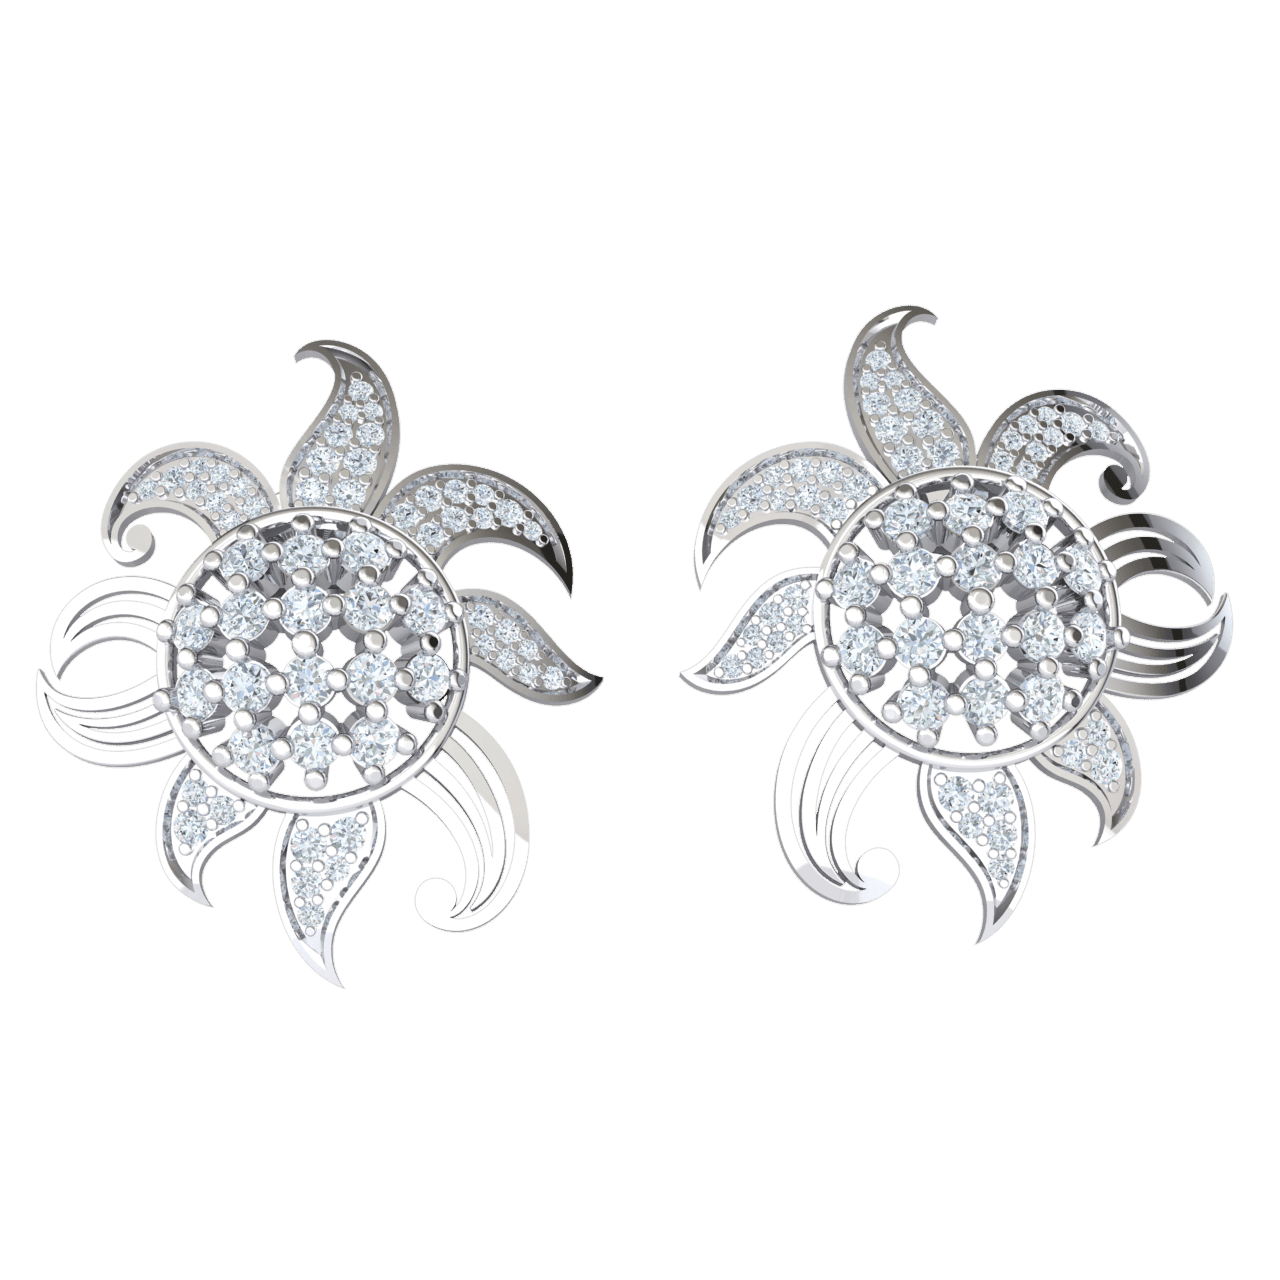 1.71 Ctw Bright As The Sun! Sun Shaped Real Earrings Covered In Brillant White Diamonds in JK I1 10 kt Gold